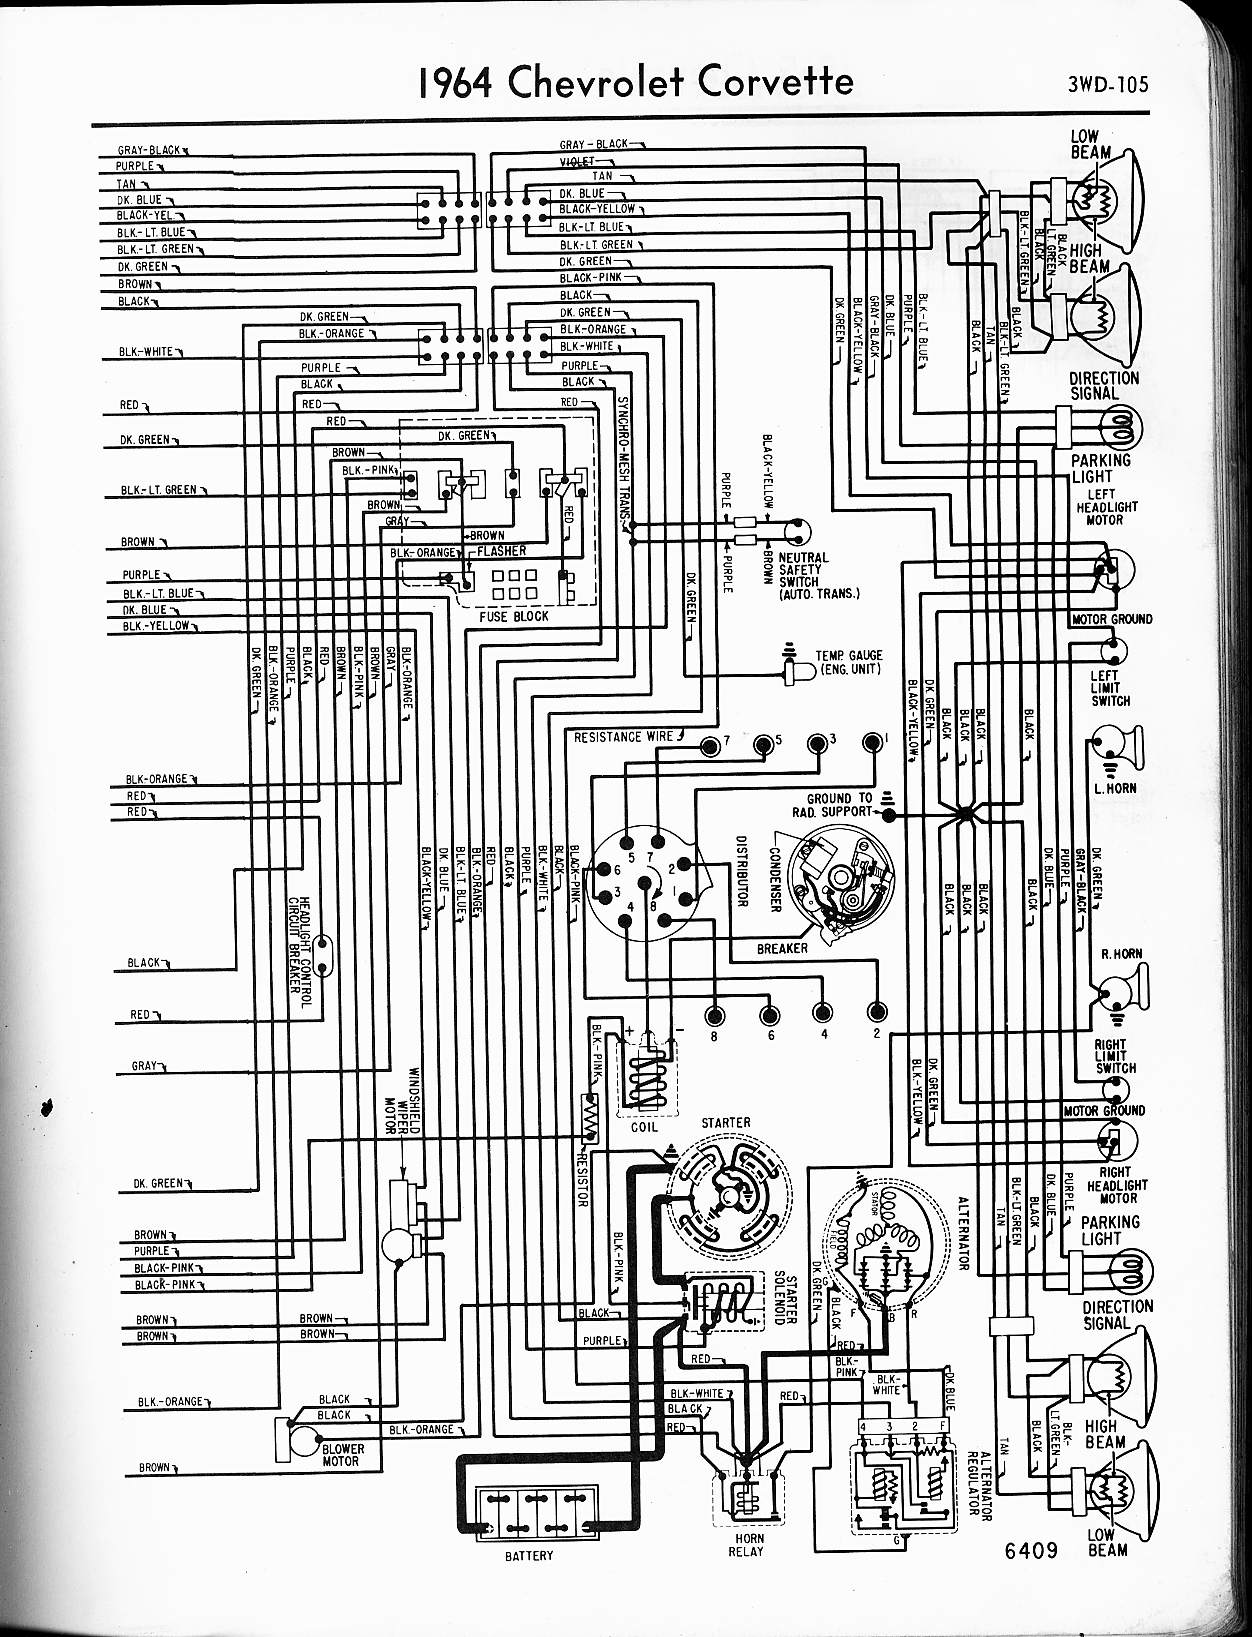 62 chevy corvette wiring diagram expert schematics diagram rh  atcobennettrecoveries com 1980 Corvette Battery Wiring Diagram 84 Corvette  Wiring Diagrams